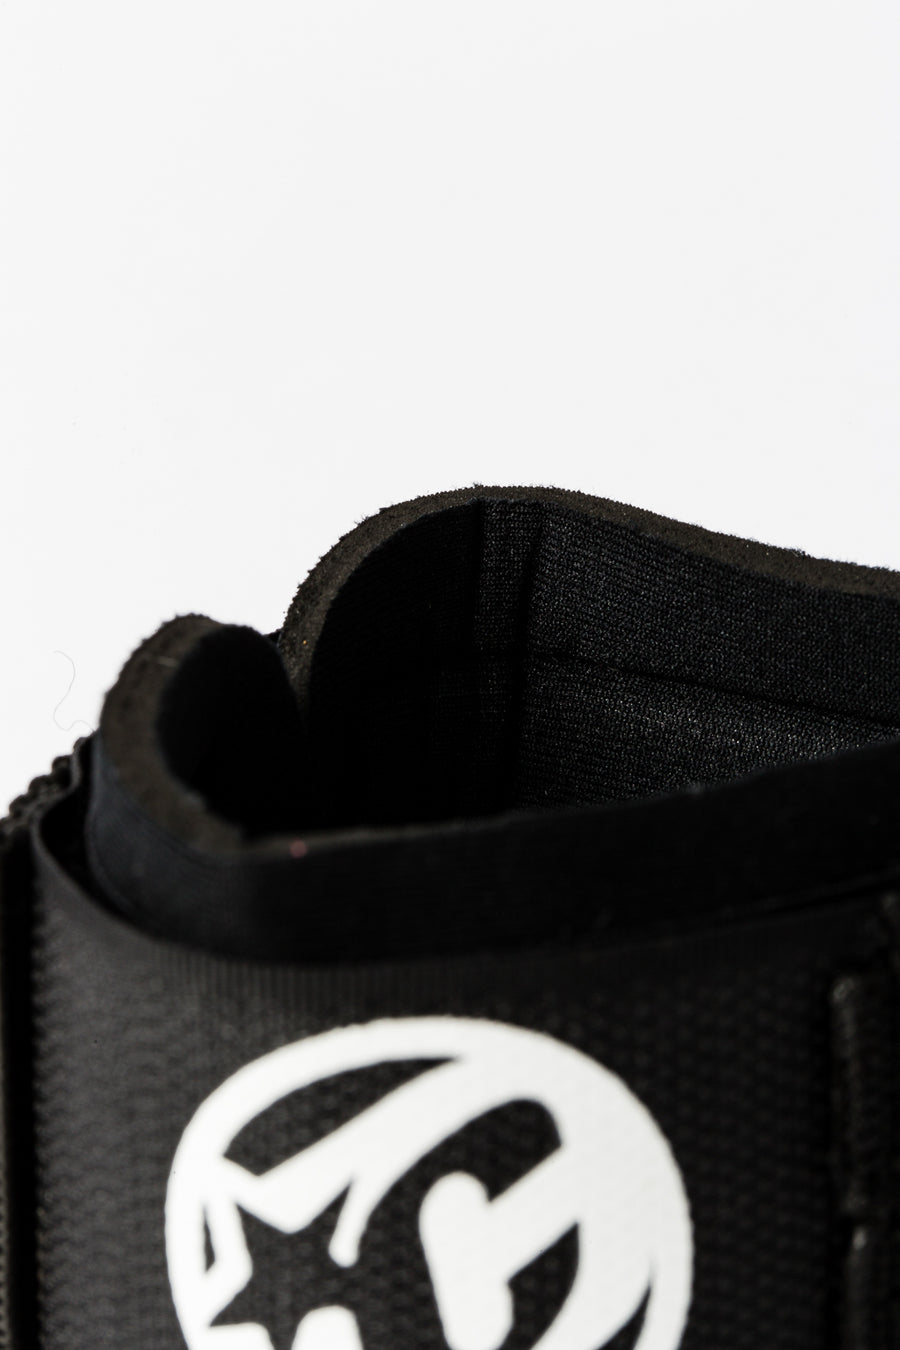 Deluxe Coiled Wrist Cuff - Bodyboard Leash